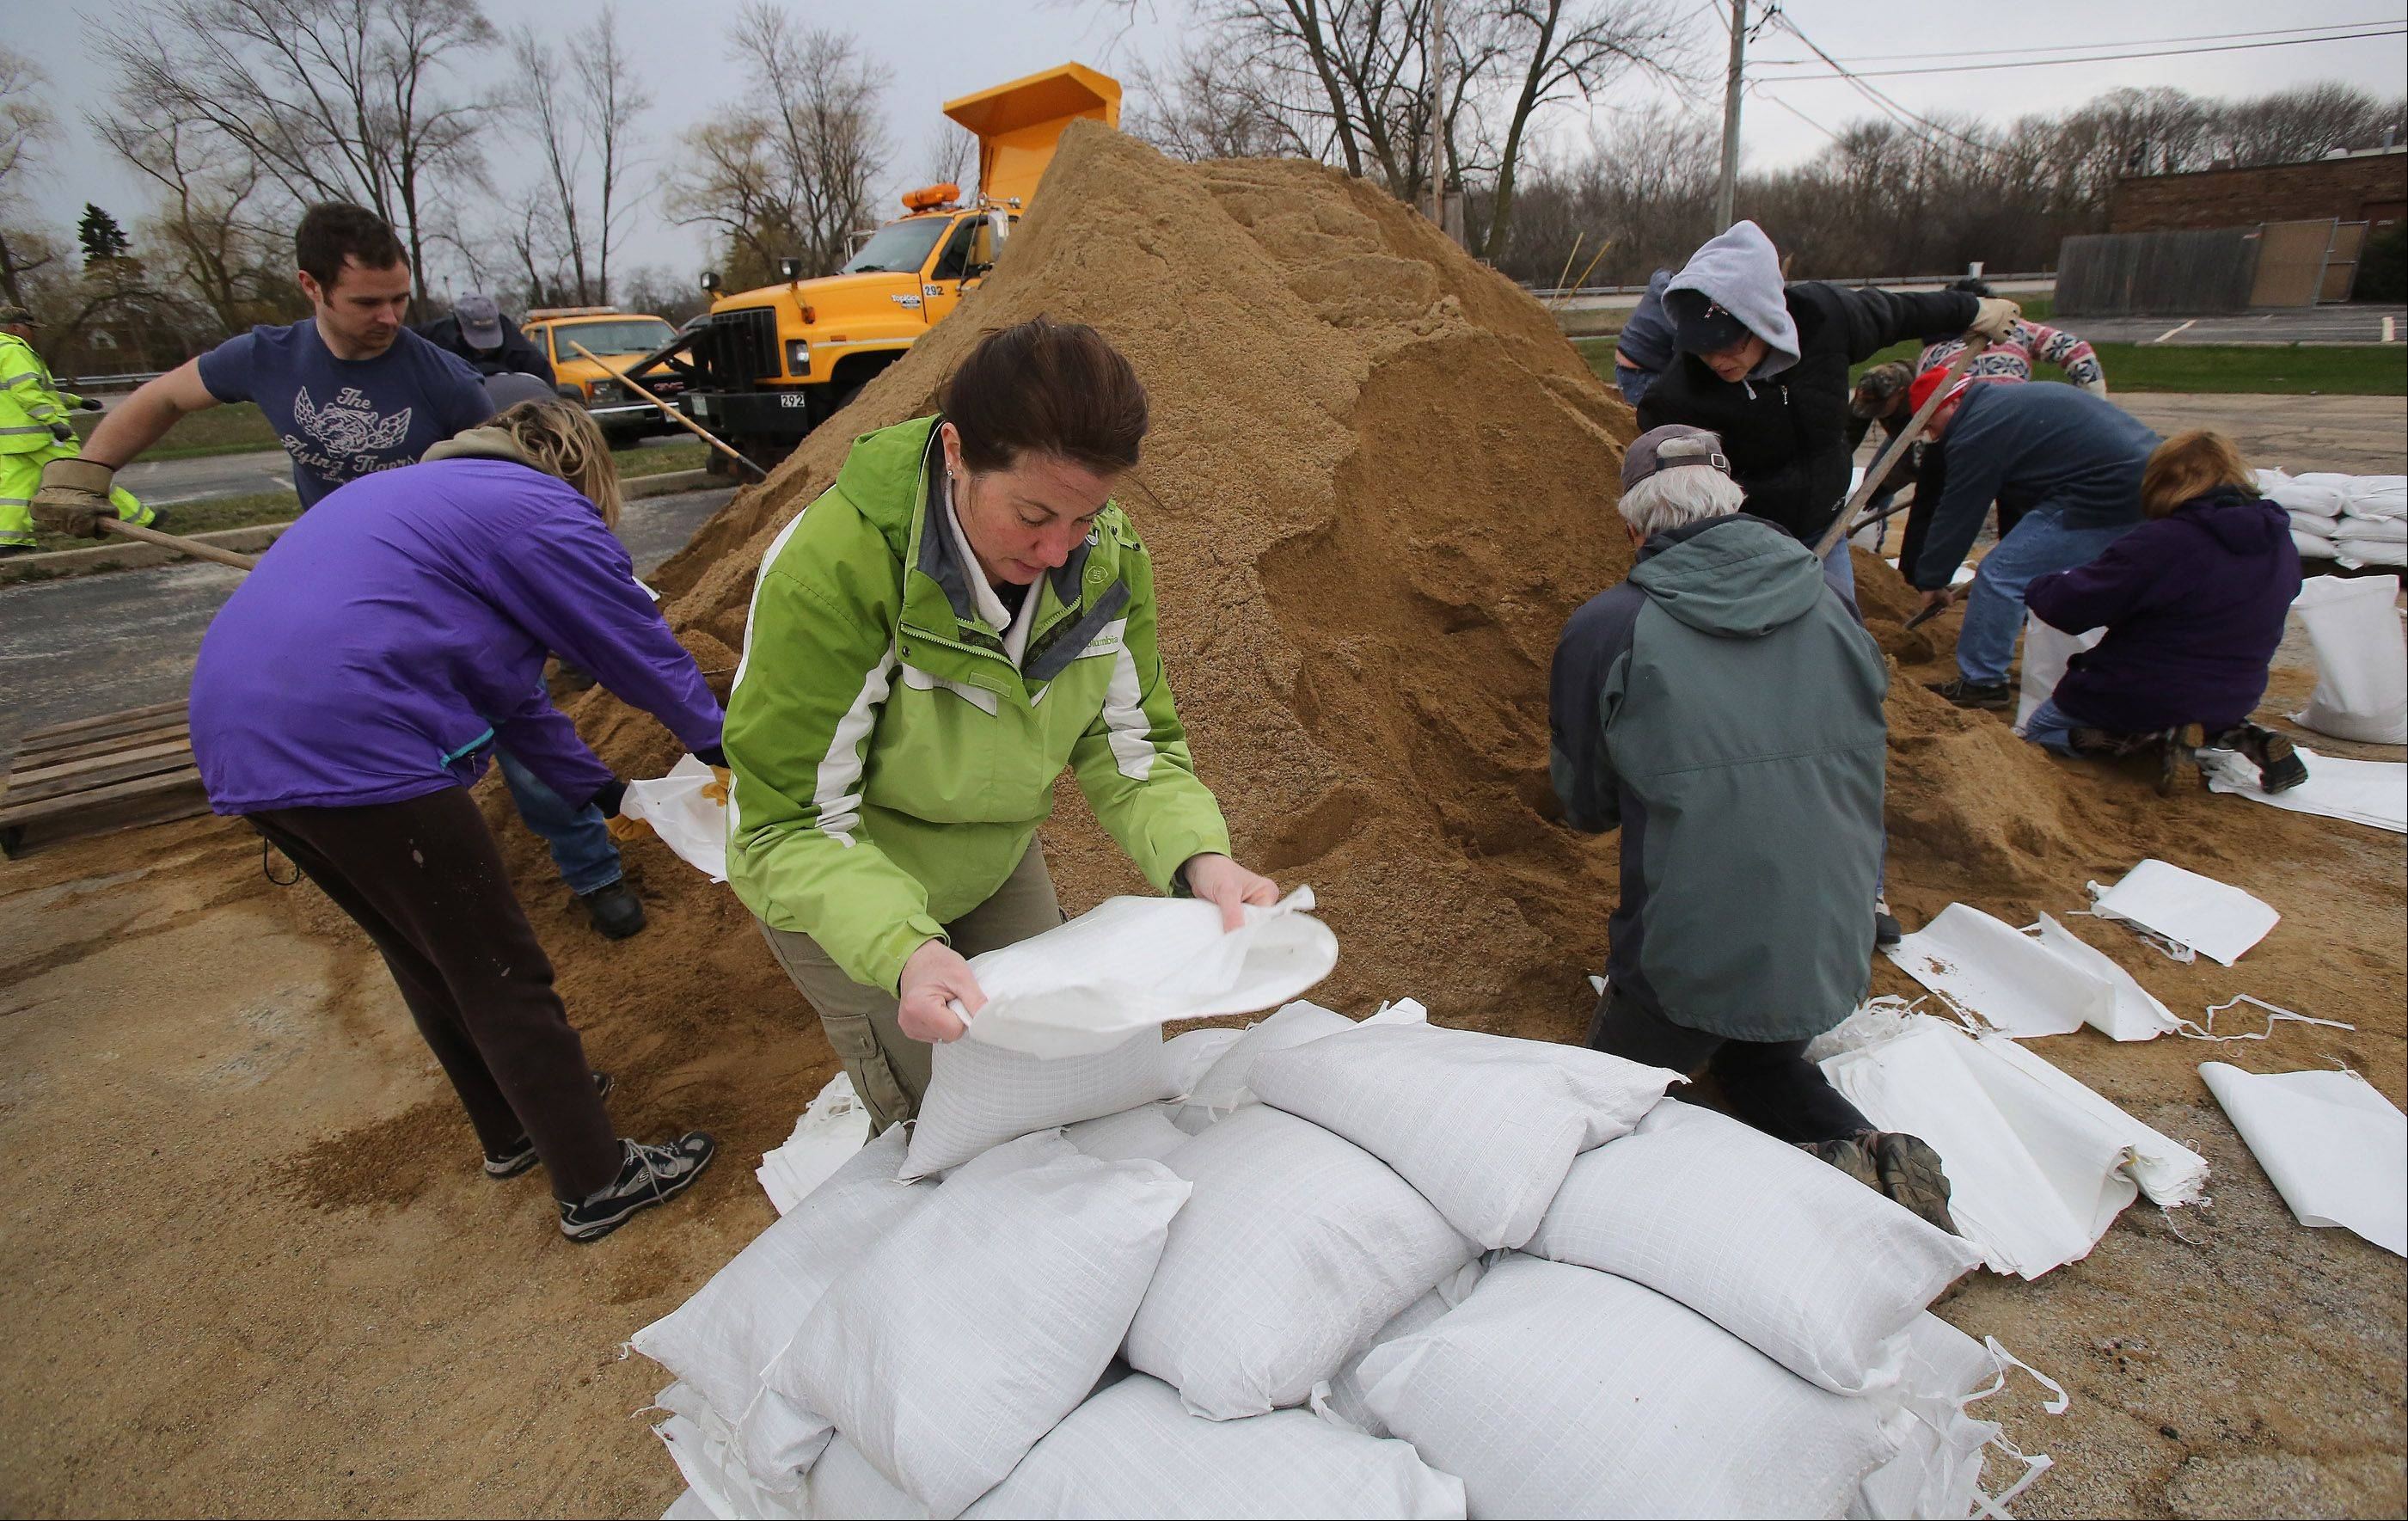 Gurnee resident Sue Tebbetts places a sandbag on a pile as volunteers fill sandbags in Gurnee yesterday to help area residents and businesses from the flooding caused by the Des Plaines River. Heavy rains are expected to continue today, causing the problem to become worse.